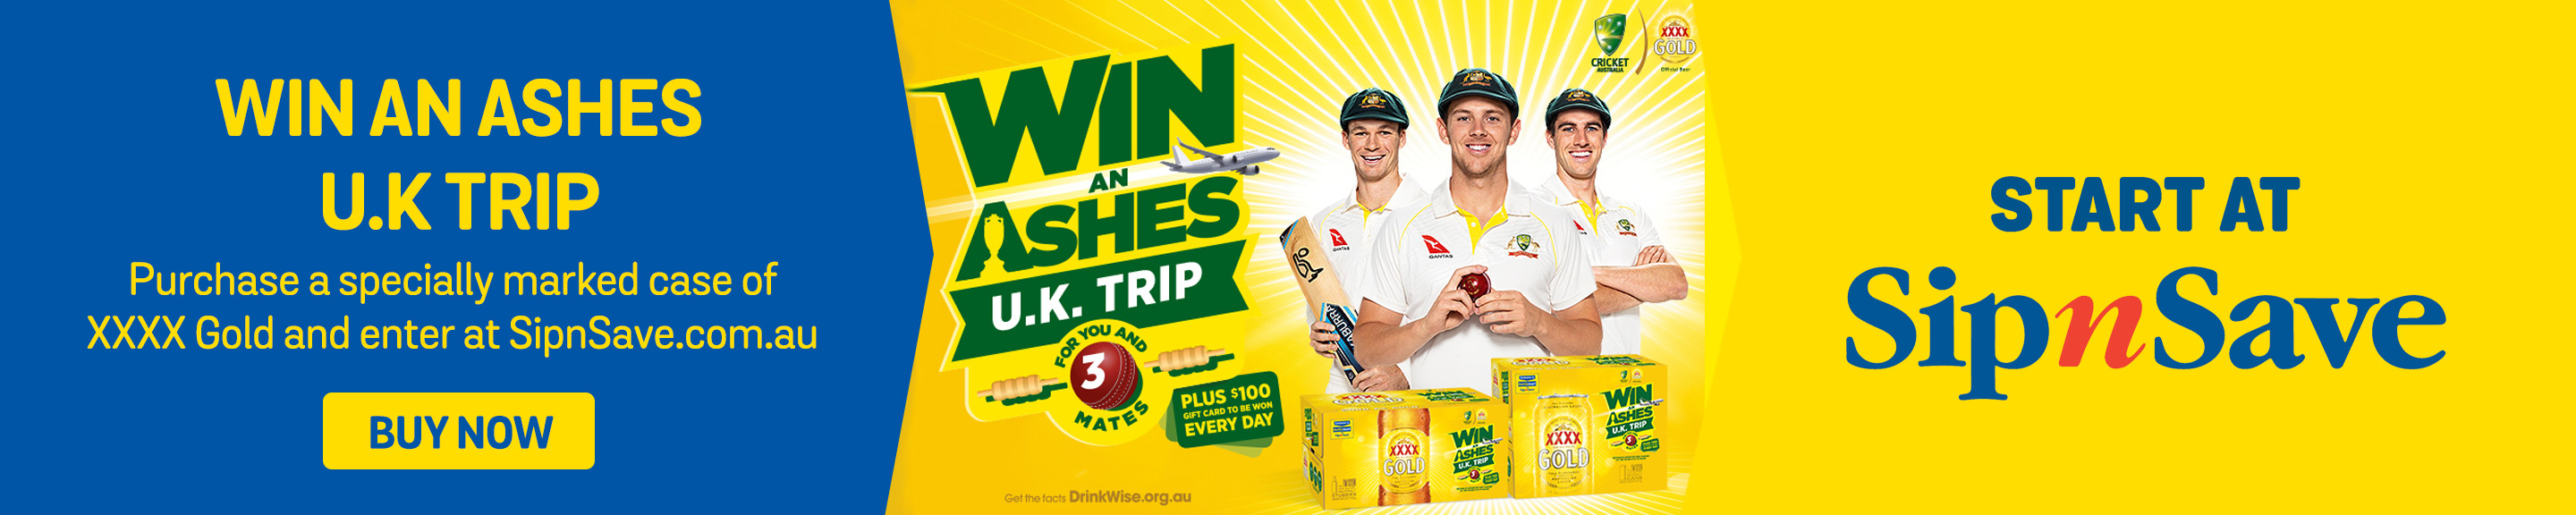 Purchase a specially marked case of XXXX Gold and enter at sipnsave.com.au